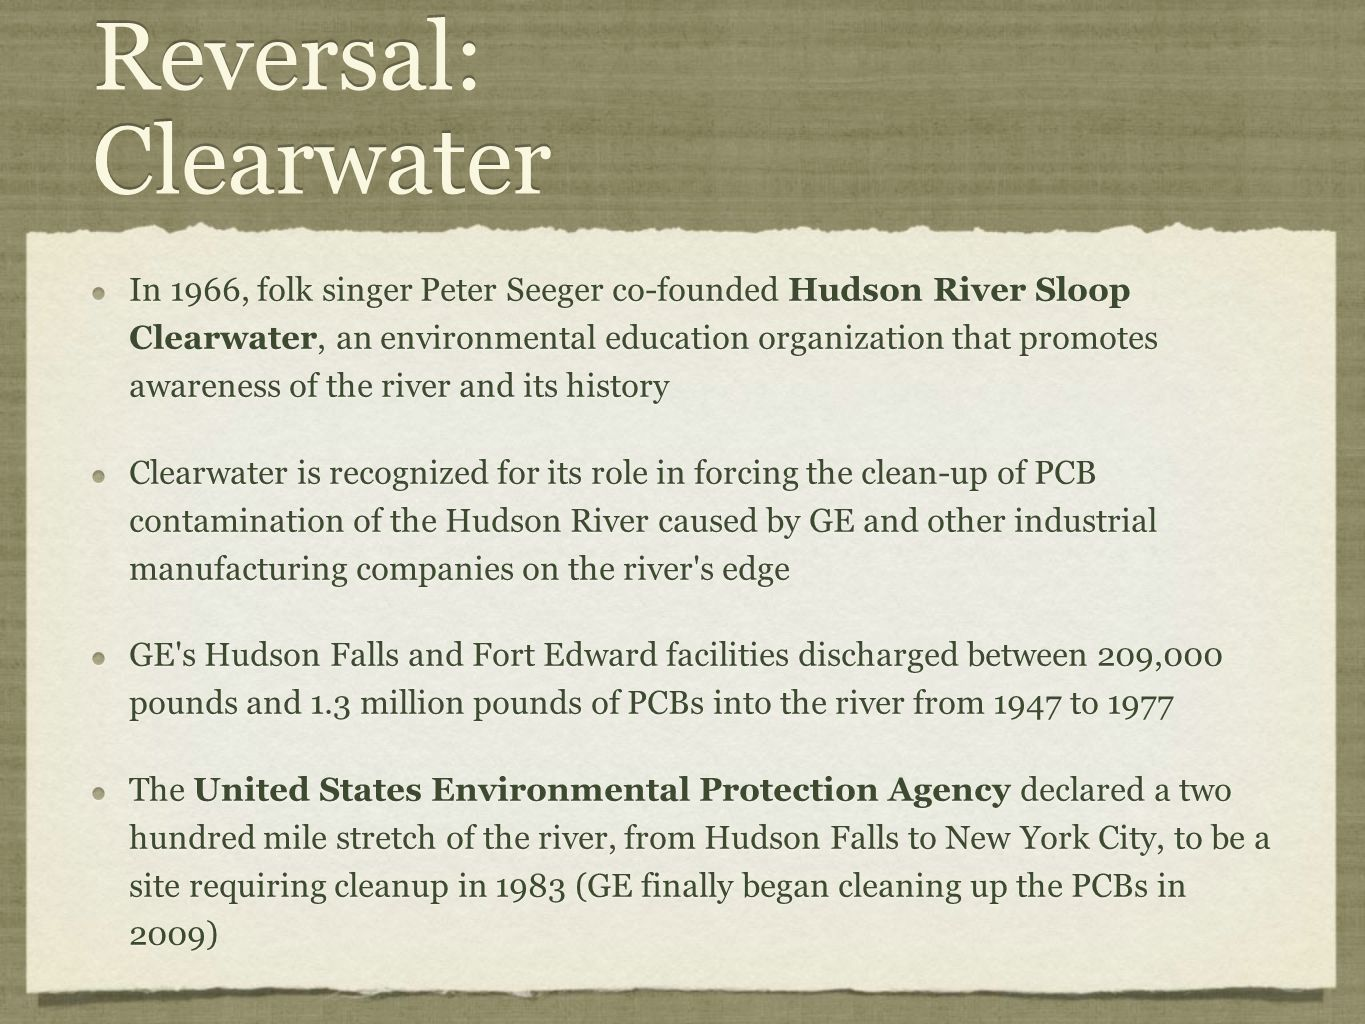 Reversal: Clearwater In 1966, folk singer Peter Seeger co-founded Hudson River Sloop Clearwater, an environmental education organization that promotes